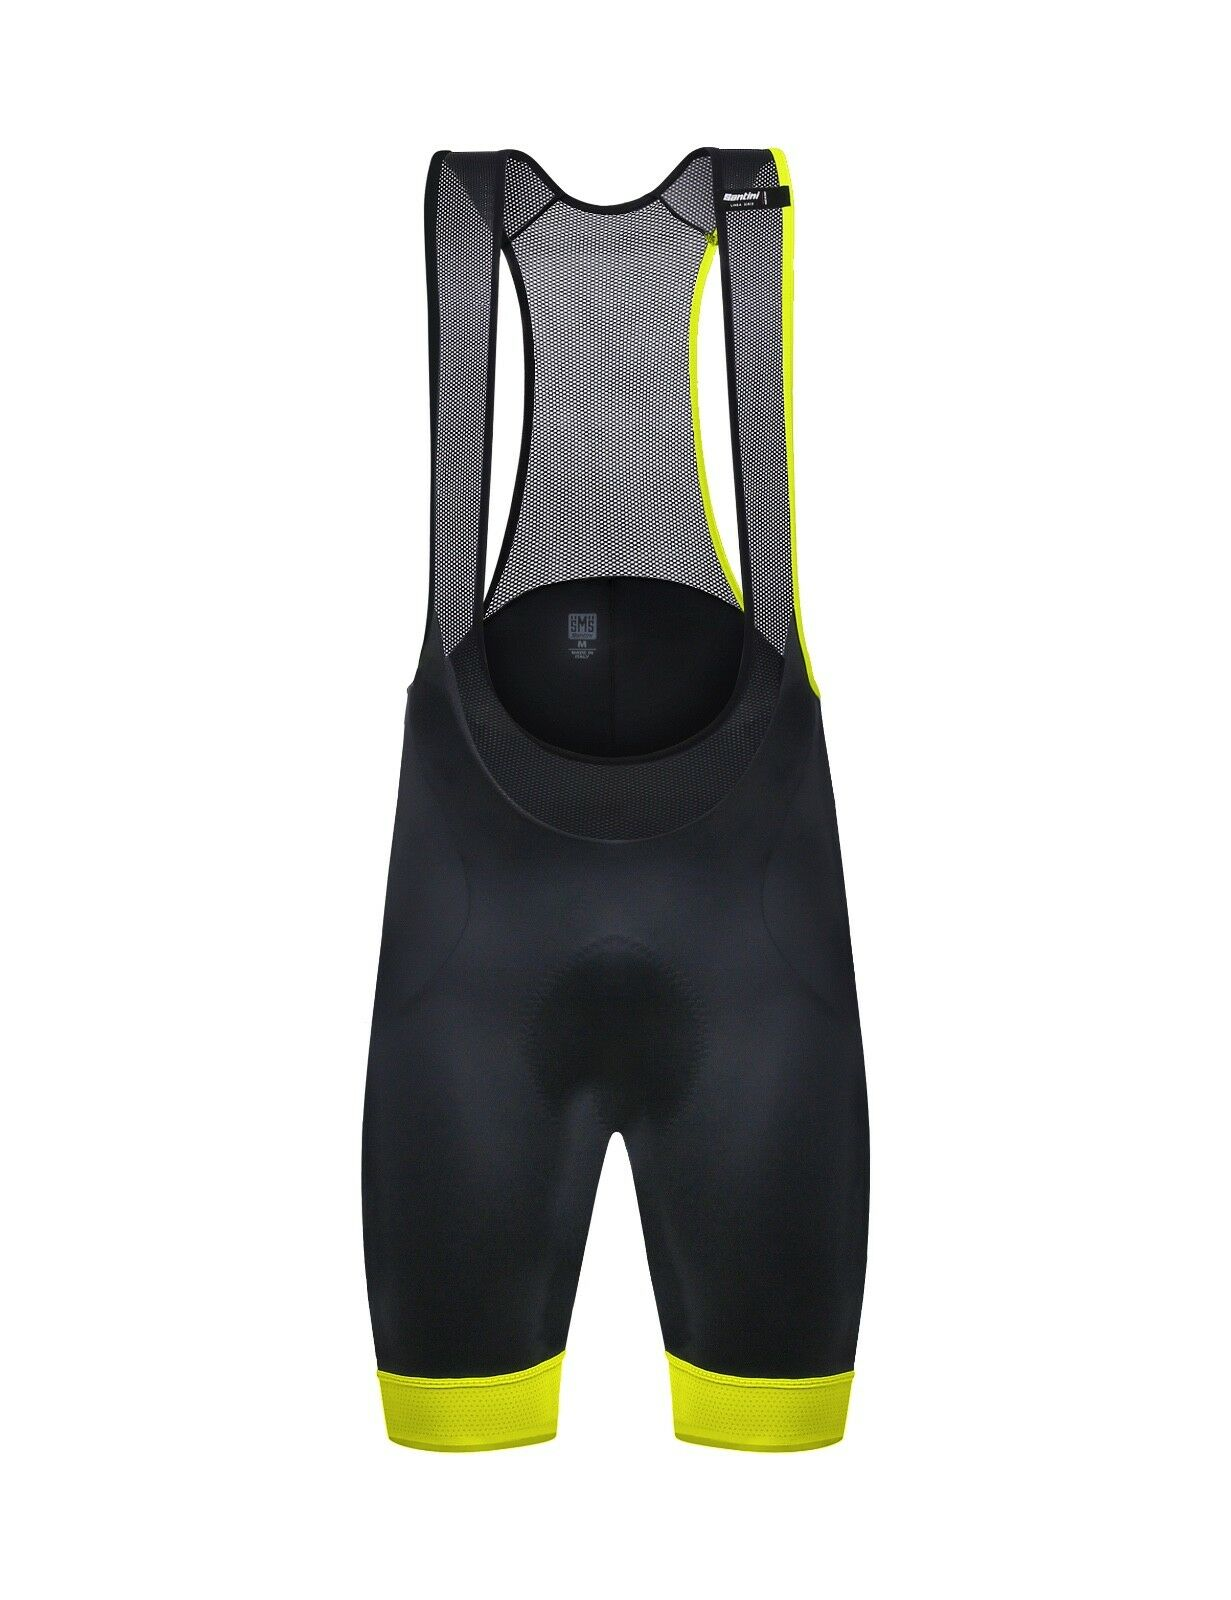 SALOPETTE SANTINI SCATTO black yellow FLUO Size XXL